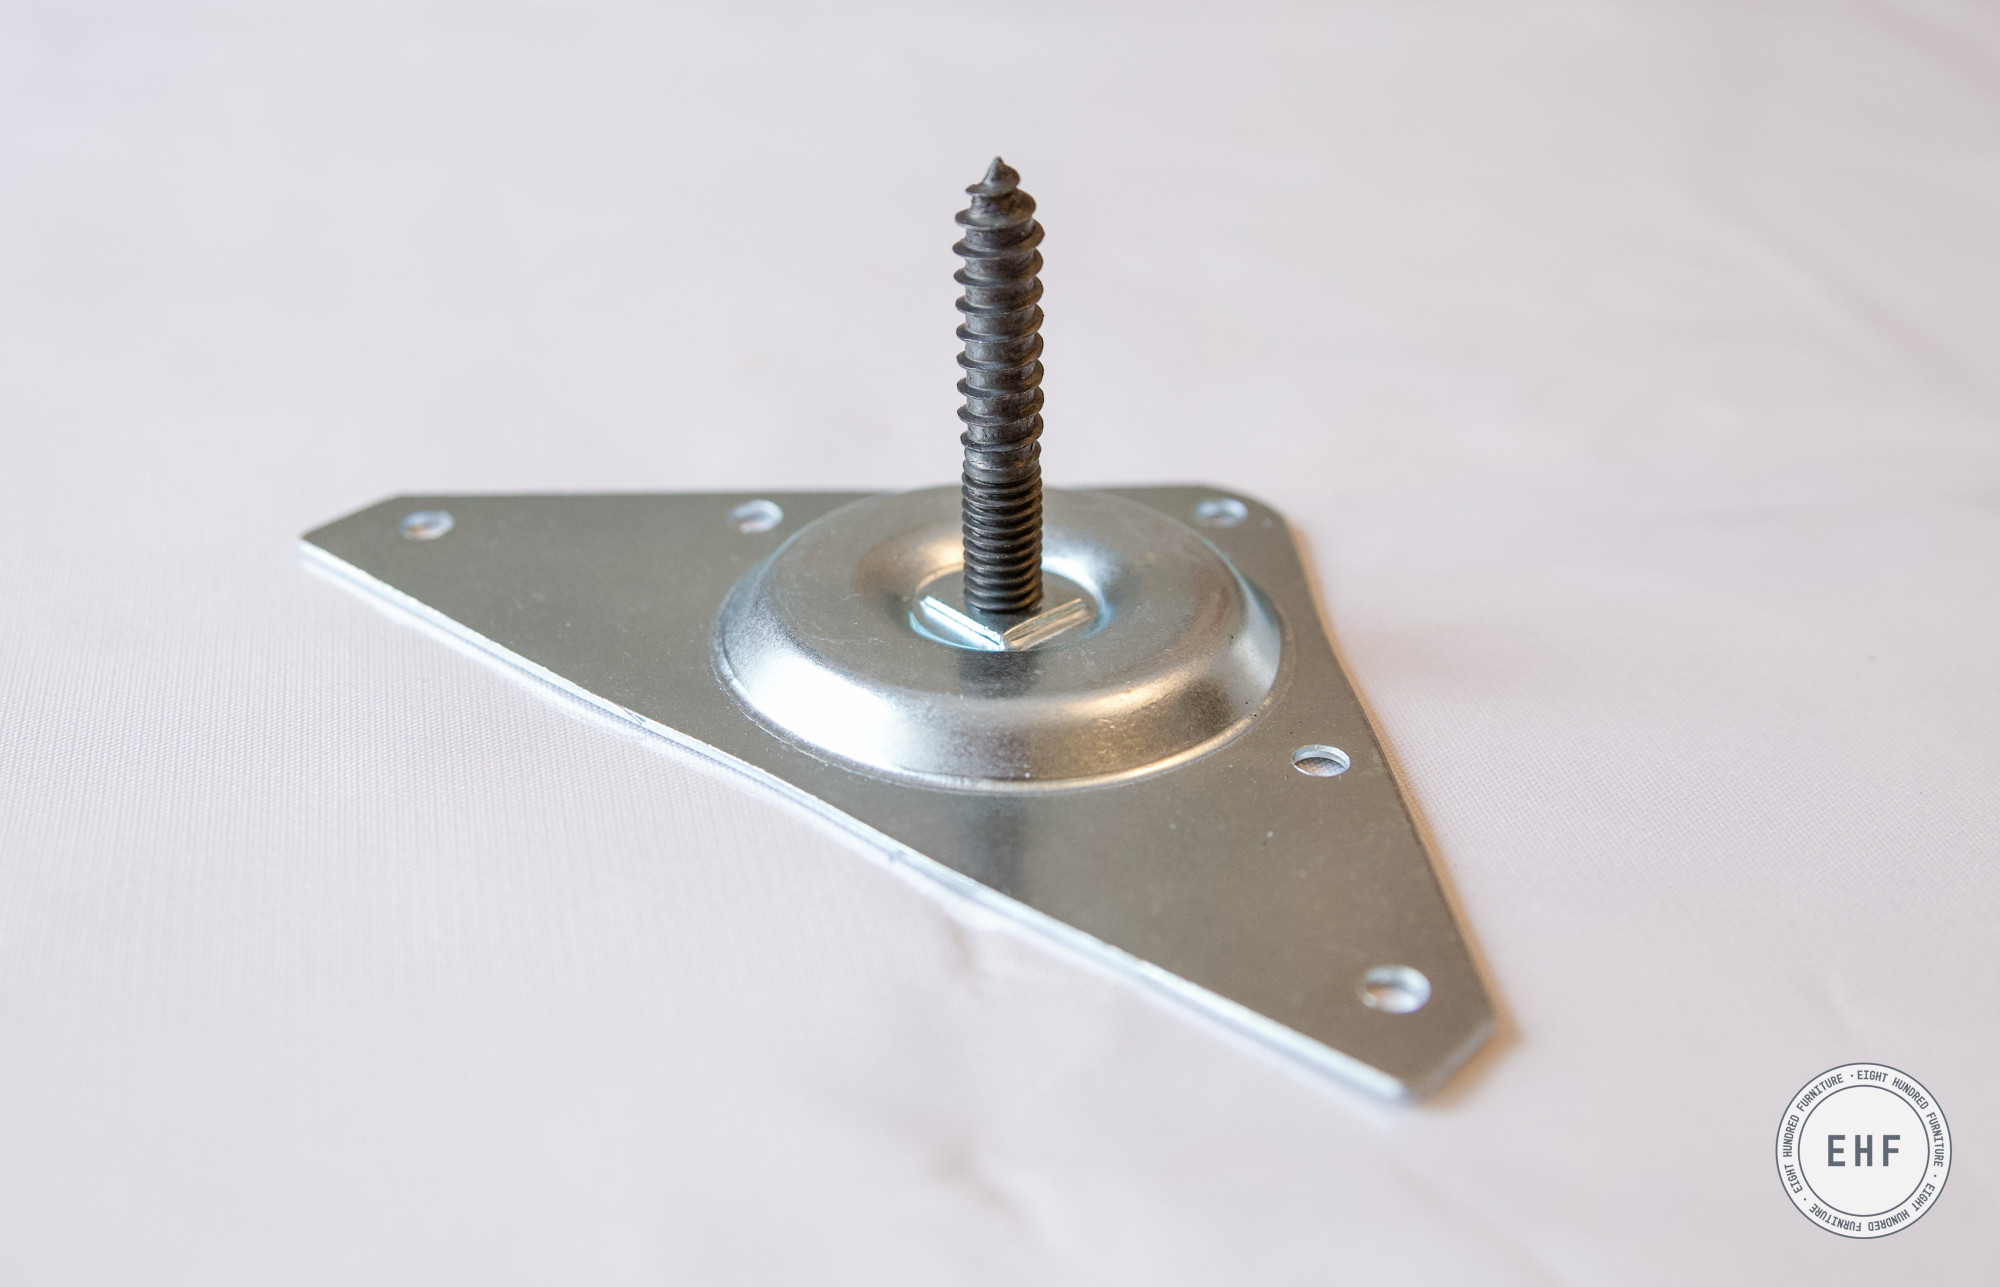 Metal corner bracket and hanger bolt for installing wooden furniture feet, Eight Hundred Furniture